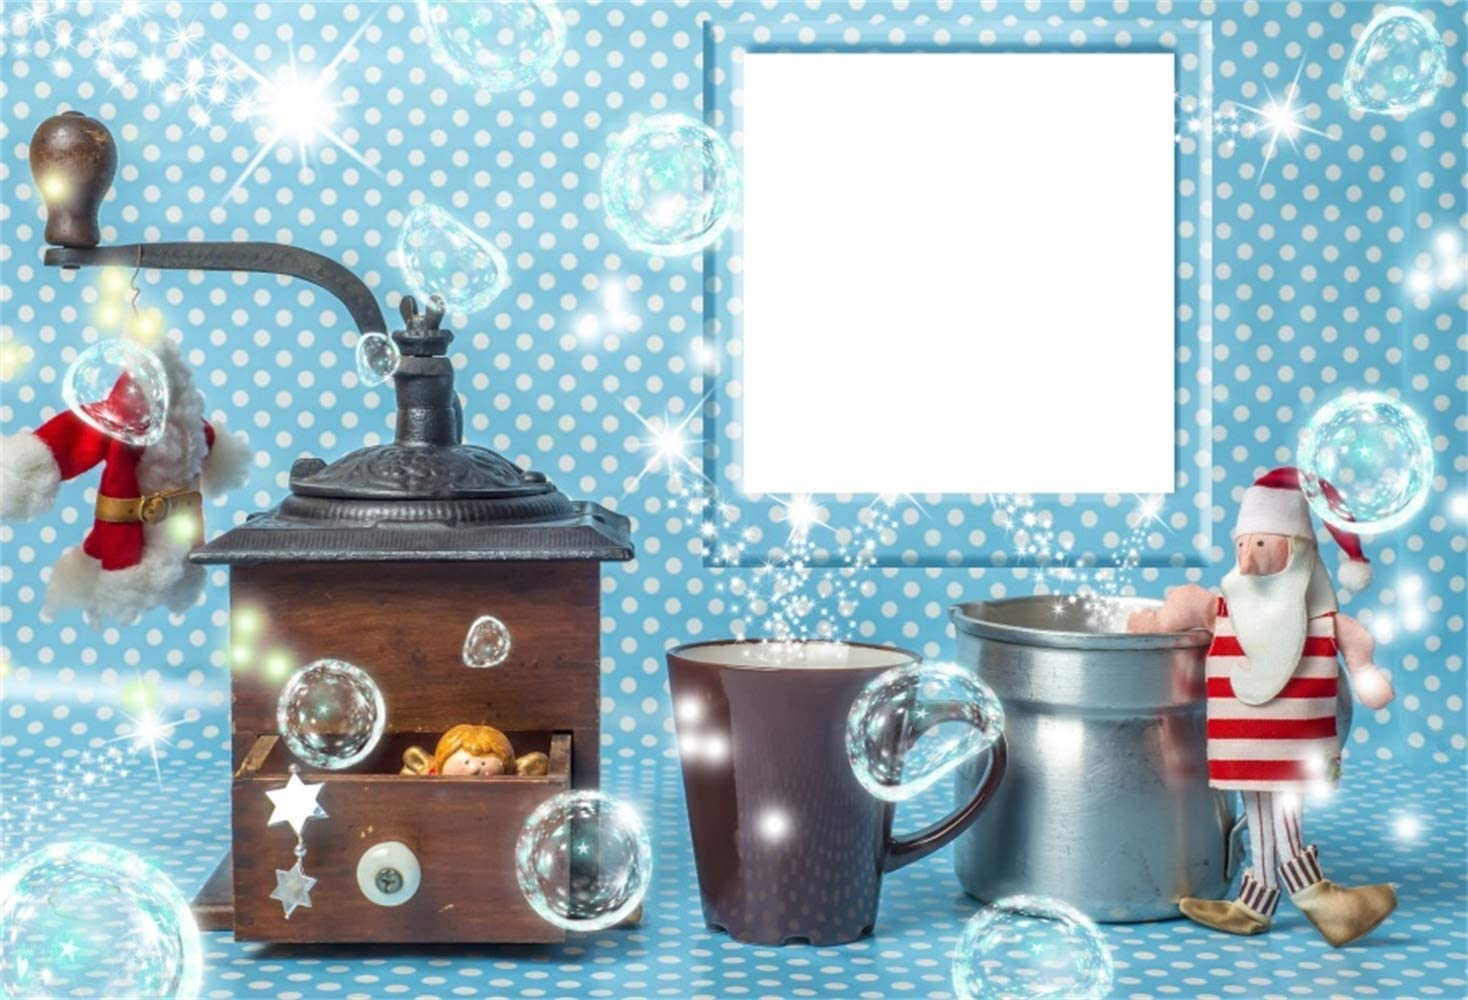 Coffee Grinder Xmas Clothes Doll Photoframe Blue White Polka Dots Wallpaper Background Child Kids Baby Shoot Childish Wallpaper Polyester Children Christmas Photography Background 7ft x5ft H W